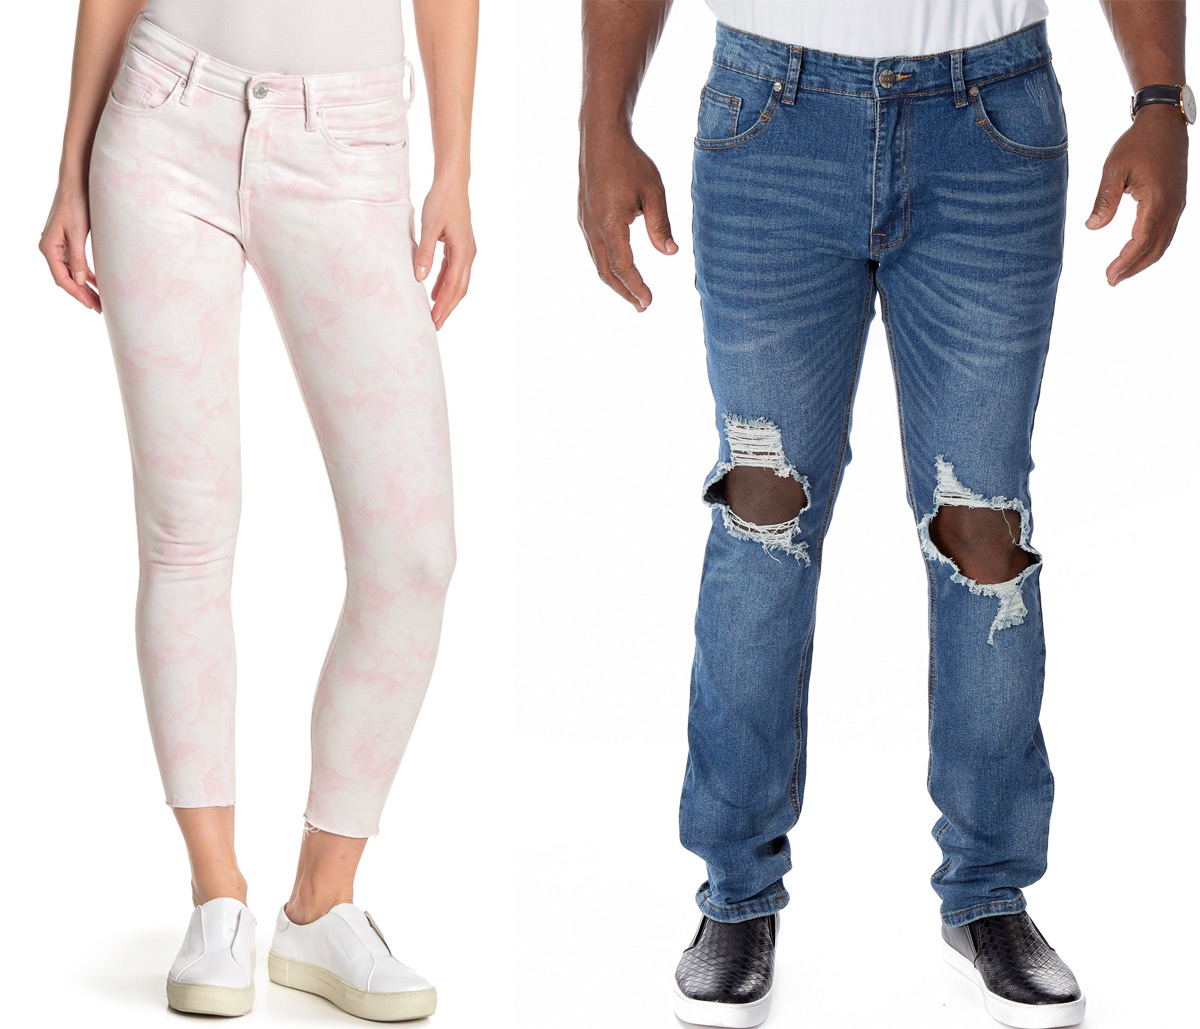 woman wearing light pink and white jeans and man wearing distressed denim jeans with knee holes